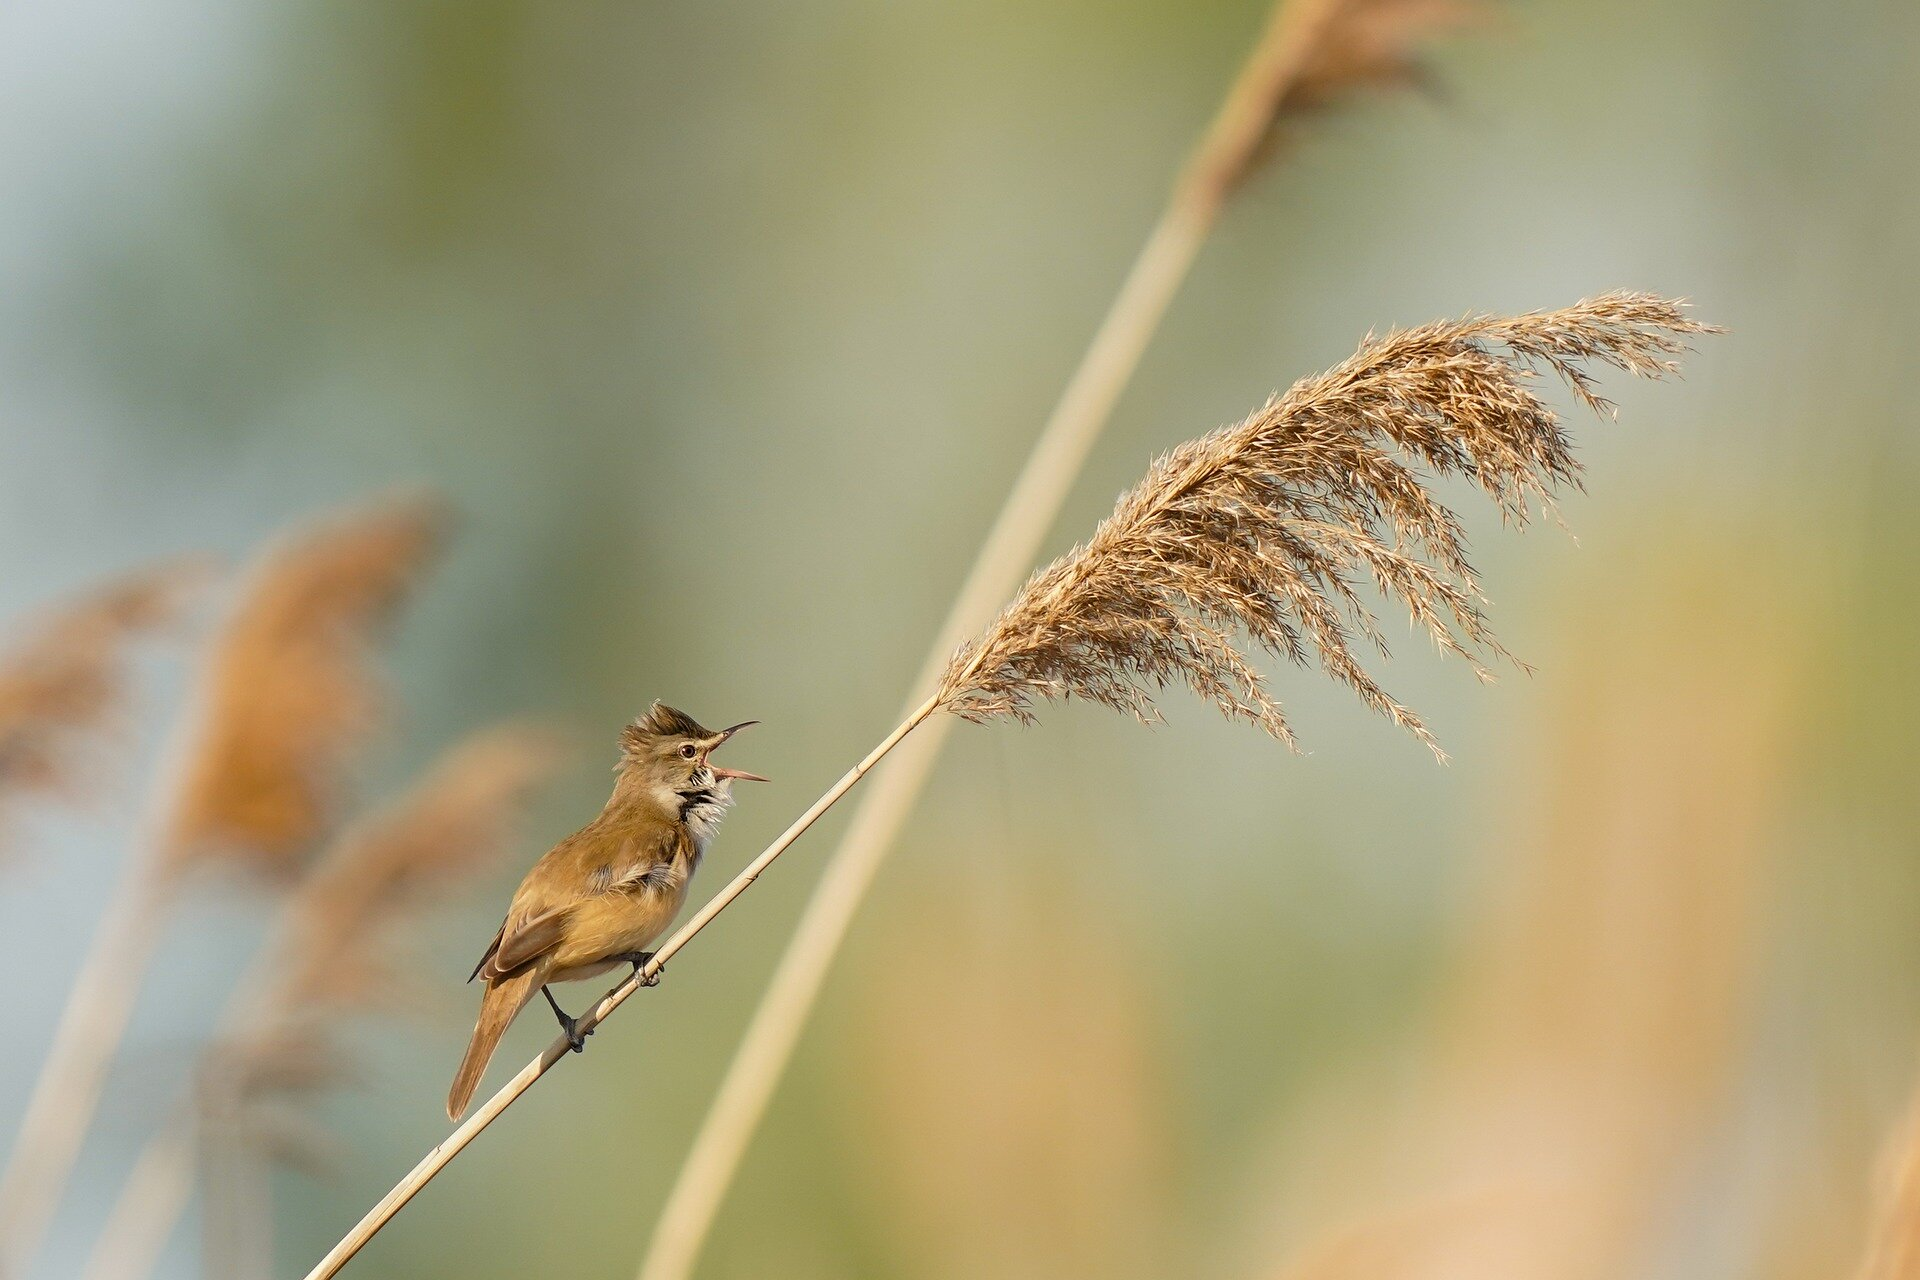 Great reed warblers fly as high as 6,000 meters over Sahara and Mediterranean